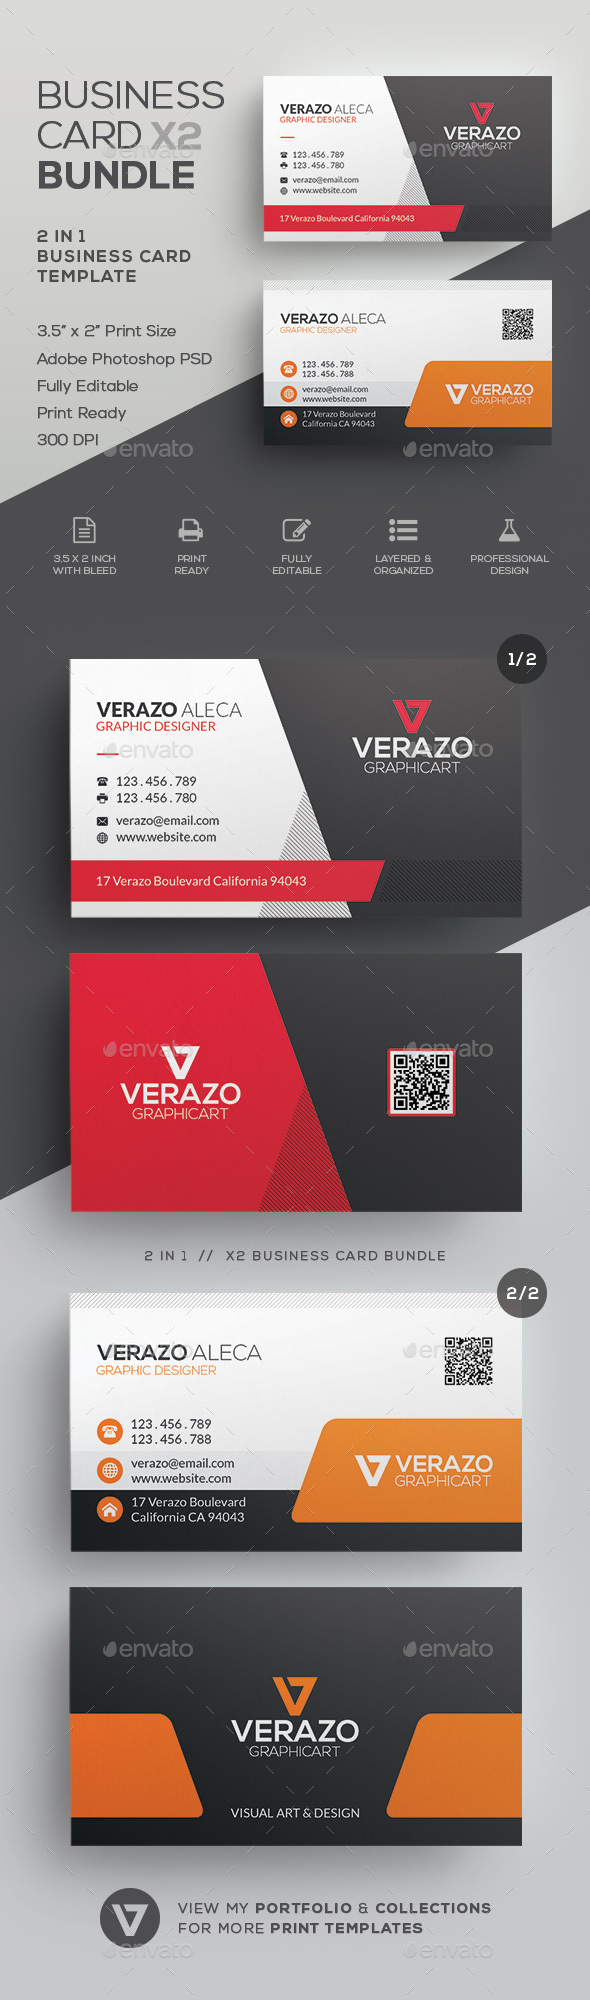 Business Card Bundle 32 - Corporate Business Cards